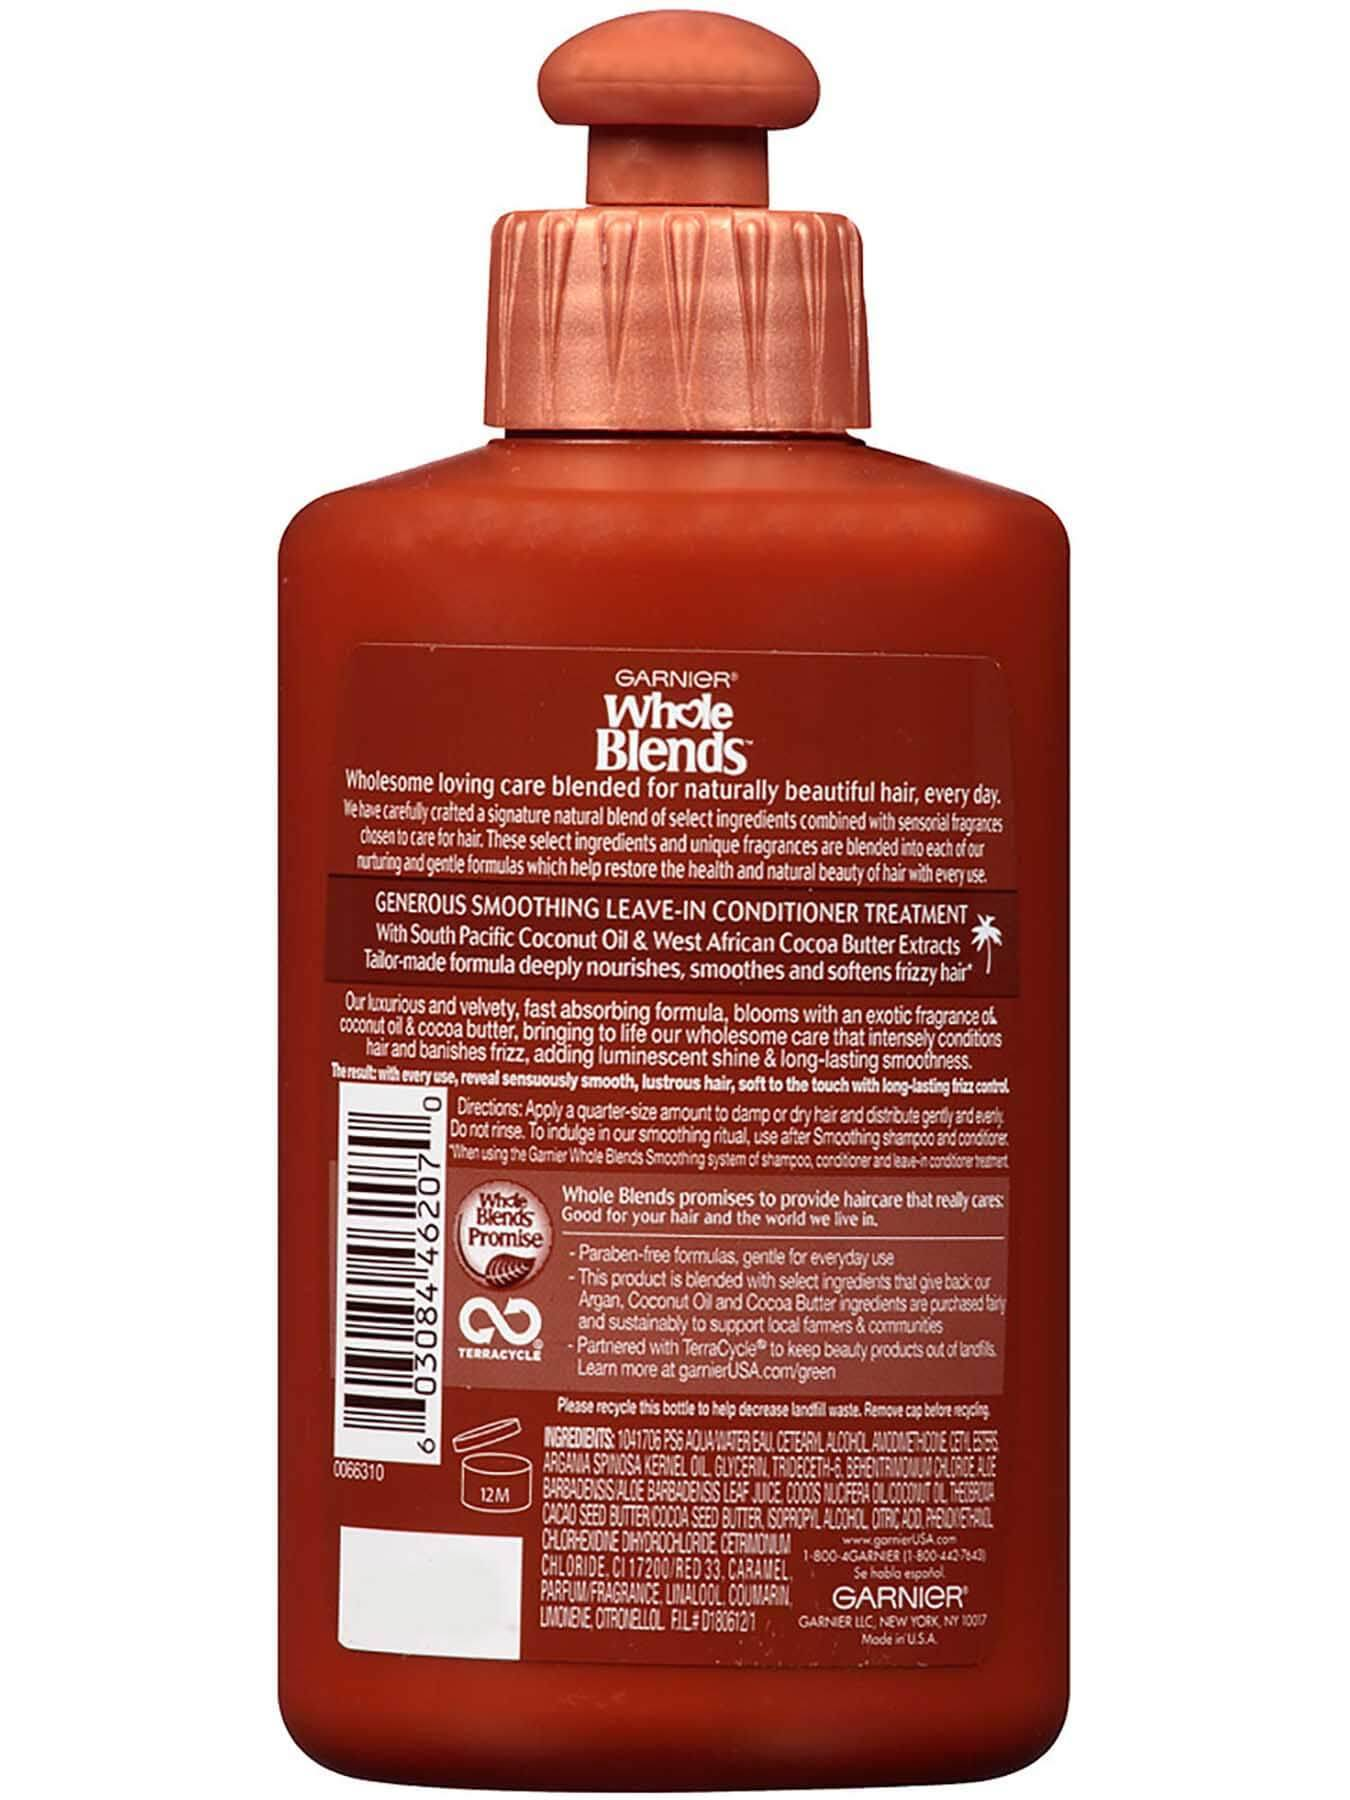 Garnier Whole Blends Smoothing Leave-In Conditioner Coconut Oil Cocoa Butter Extracts